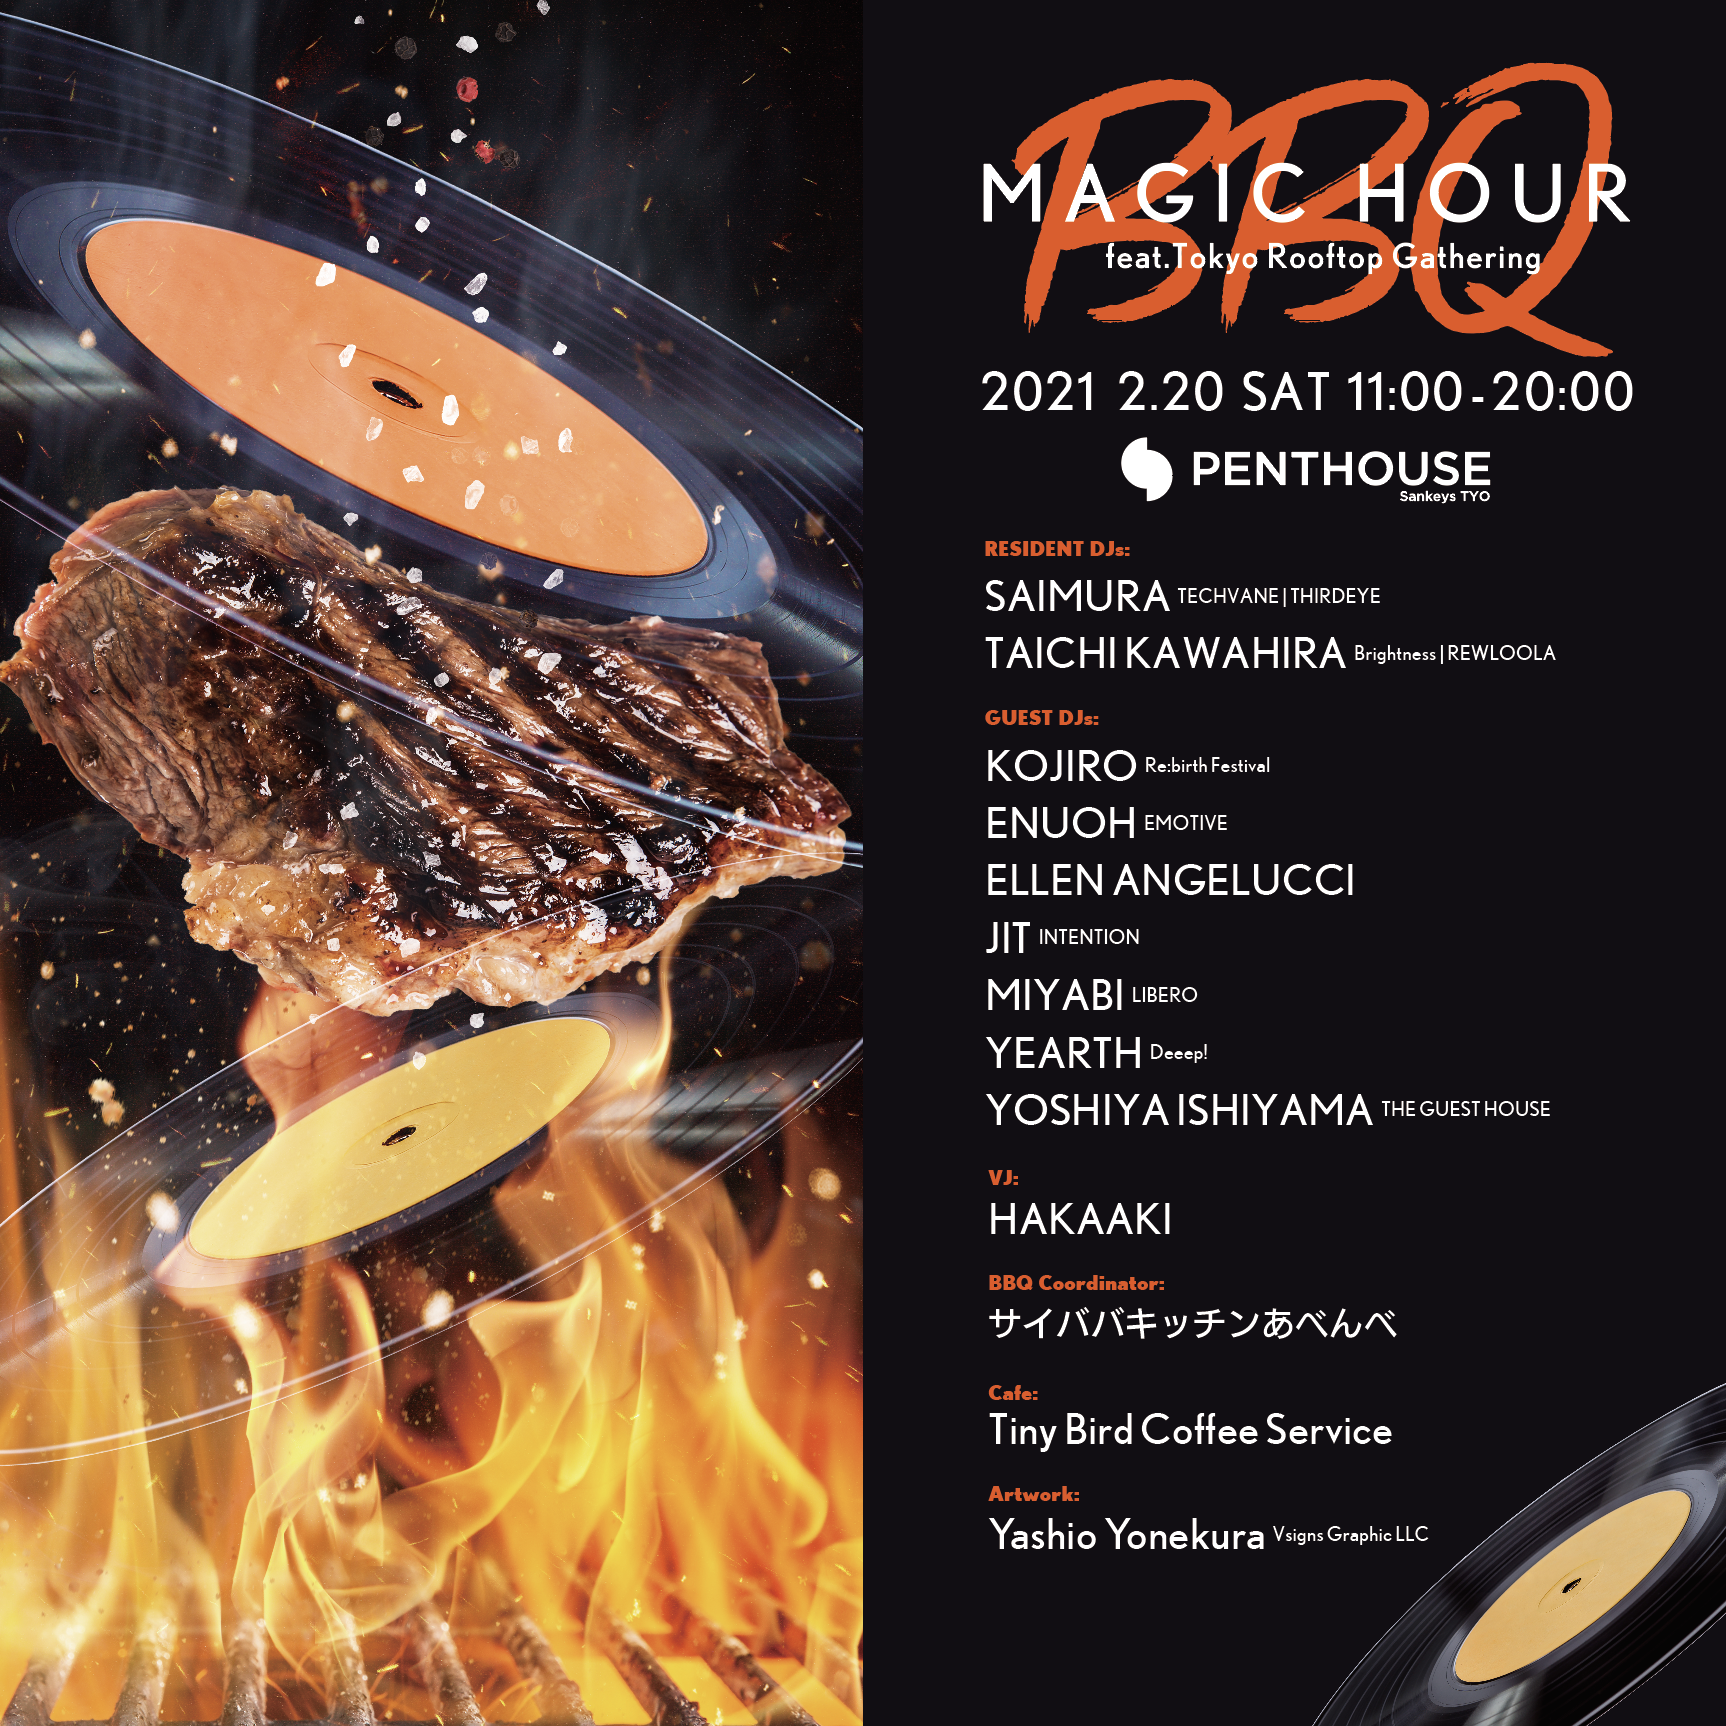 MAGIC HOUR BBQ -Presented by Tokyo Rooftop Gathering-